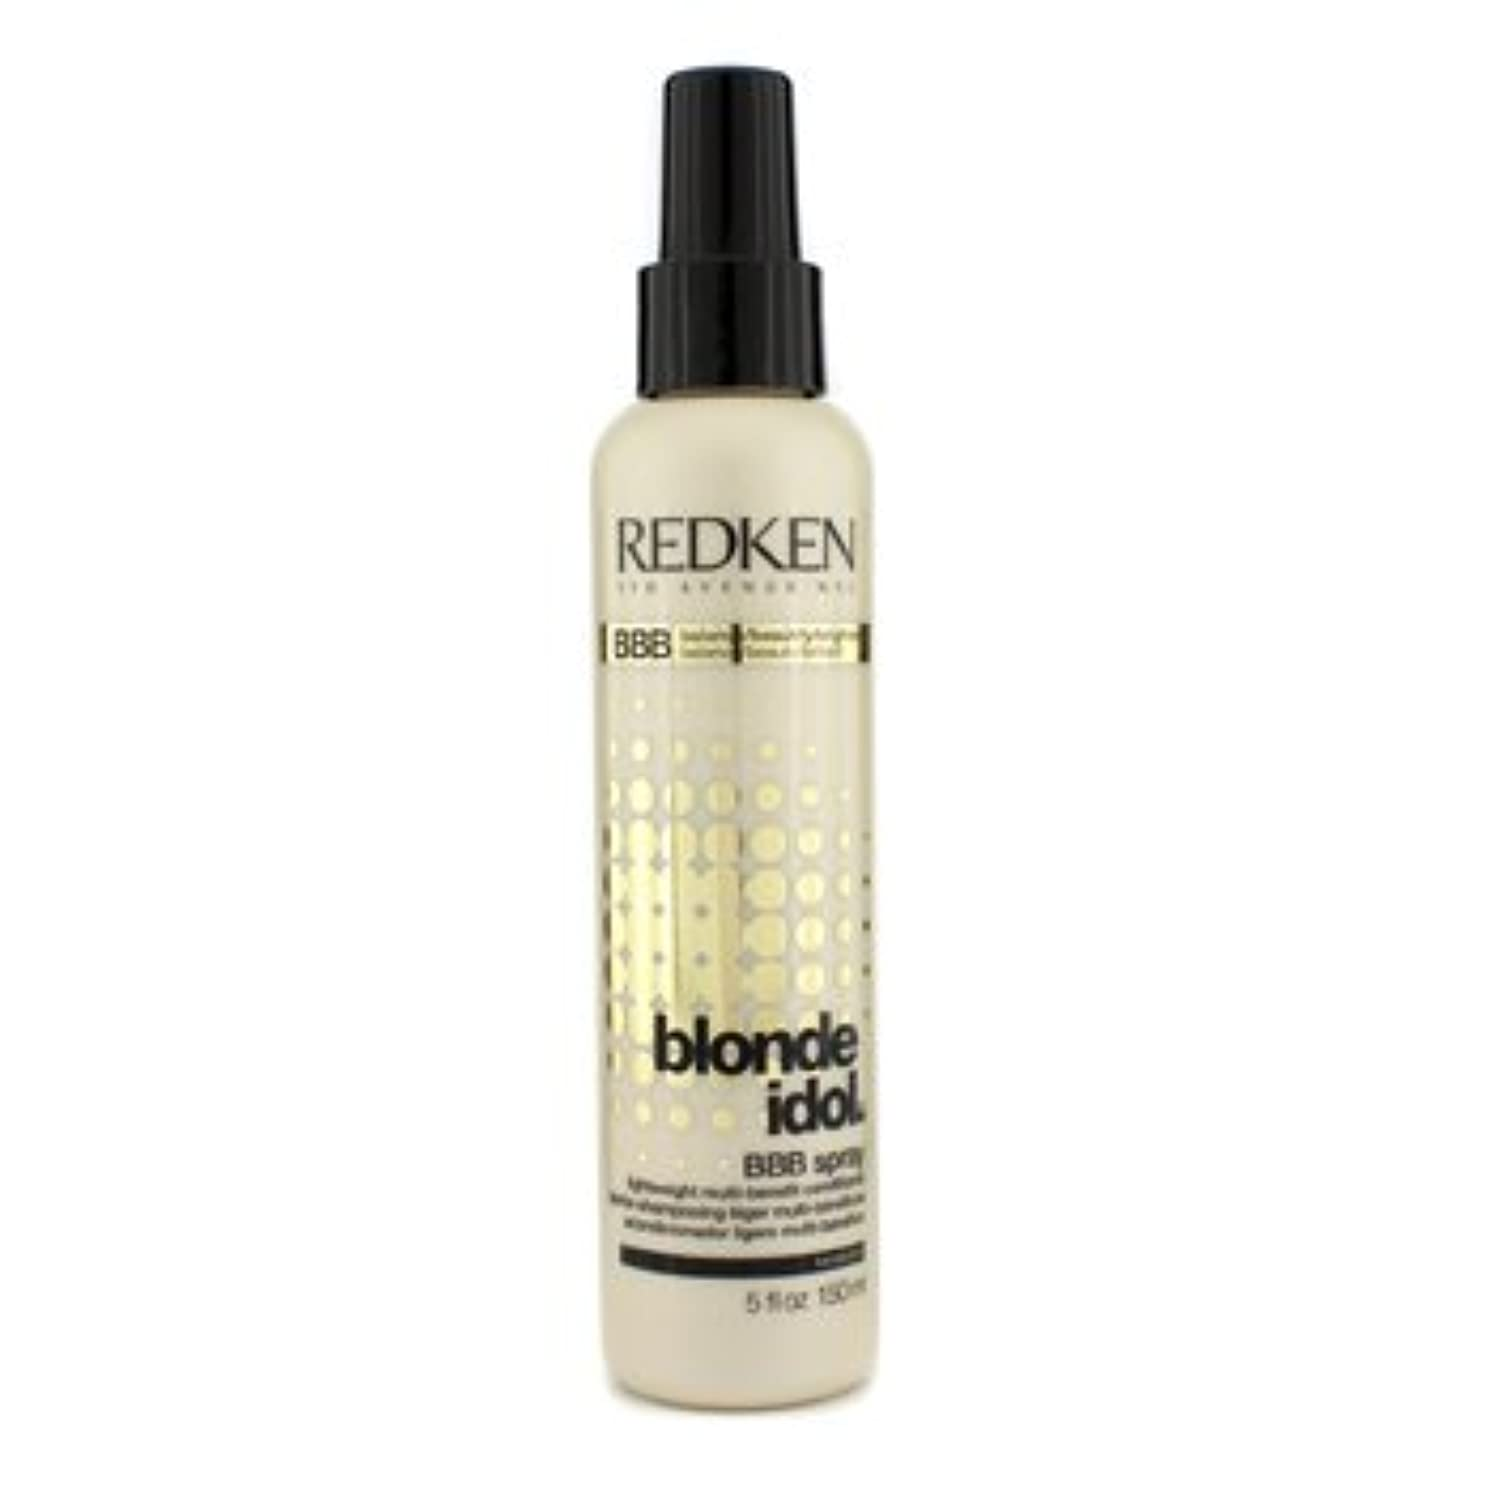 爆発物間欠思いやりのある[Redken] Blonde Idol BBB Spray Lightweight Multi-Benefit Conditioner (For Beautiful Blonde Hair) 150ml/5oz